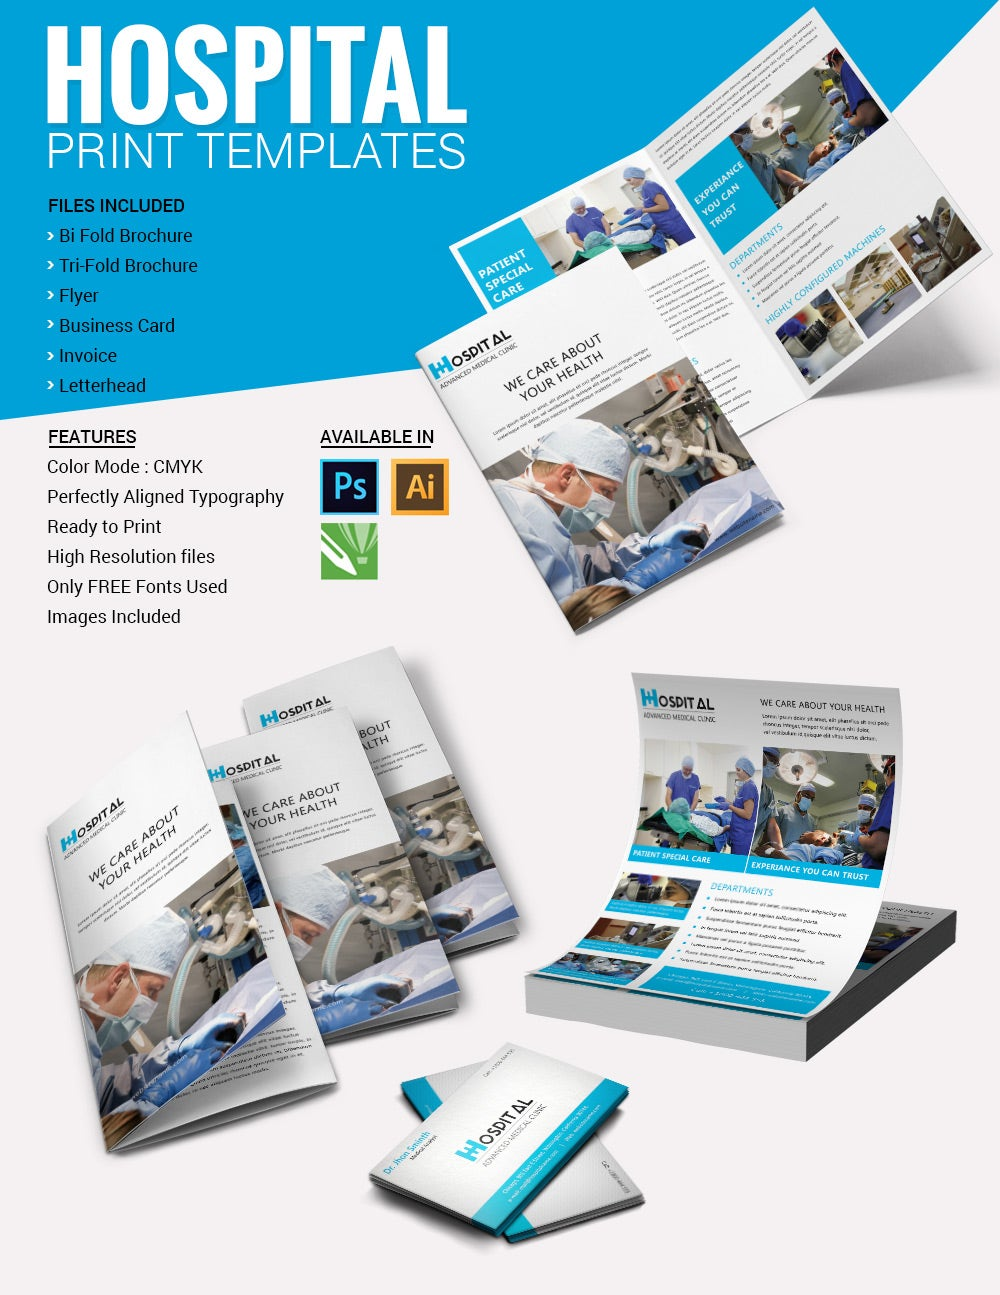 Medical brochure template 39 free psd ai vector eps for Free medical brochure templates